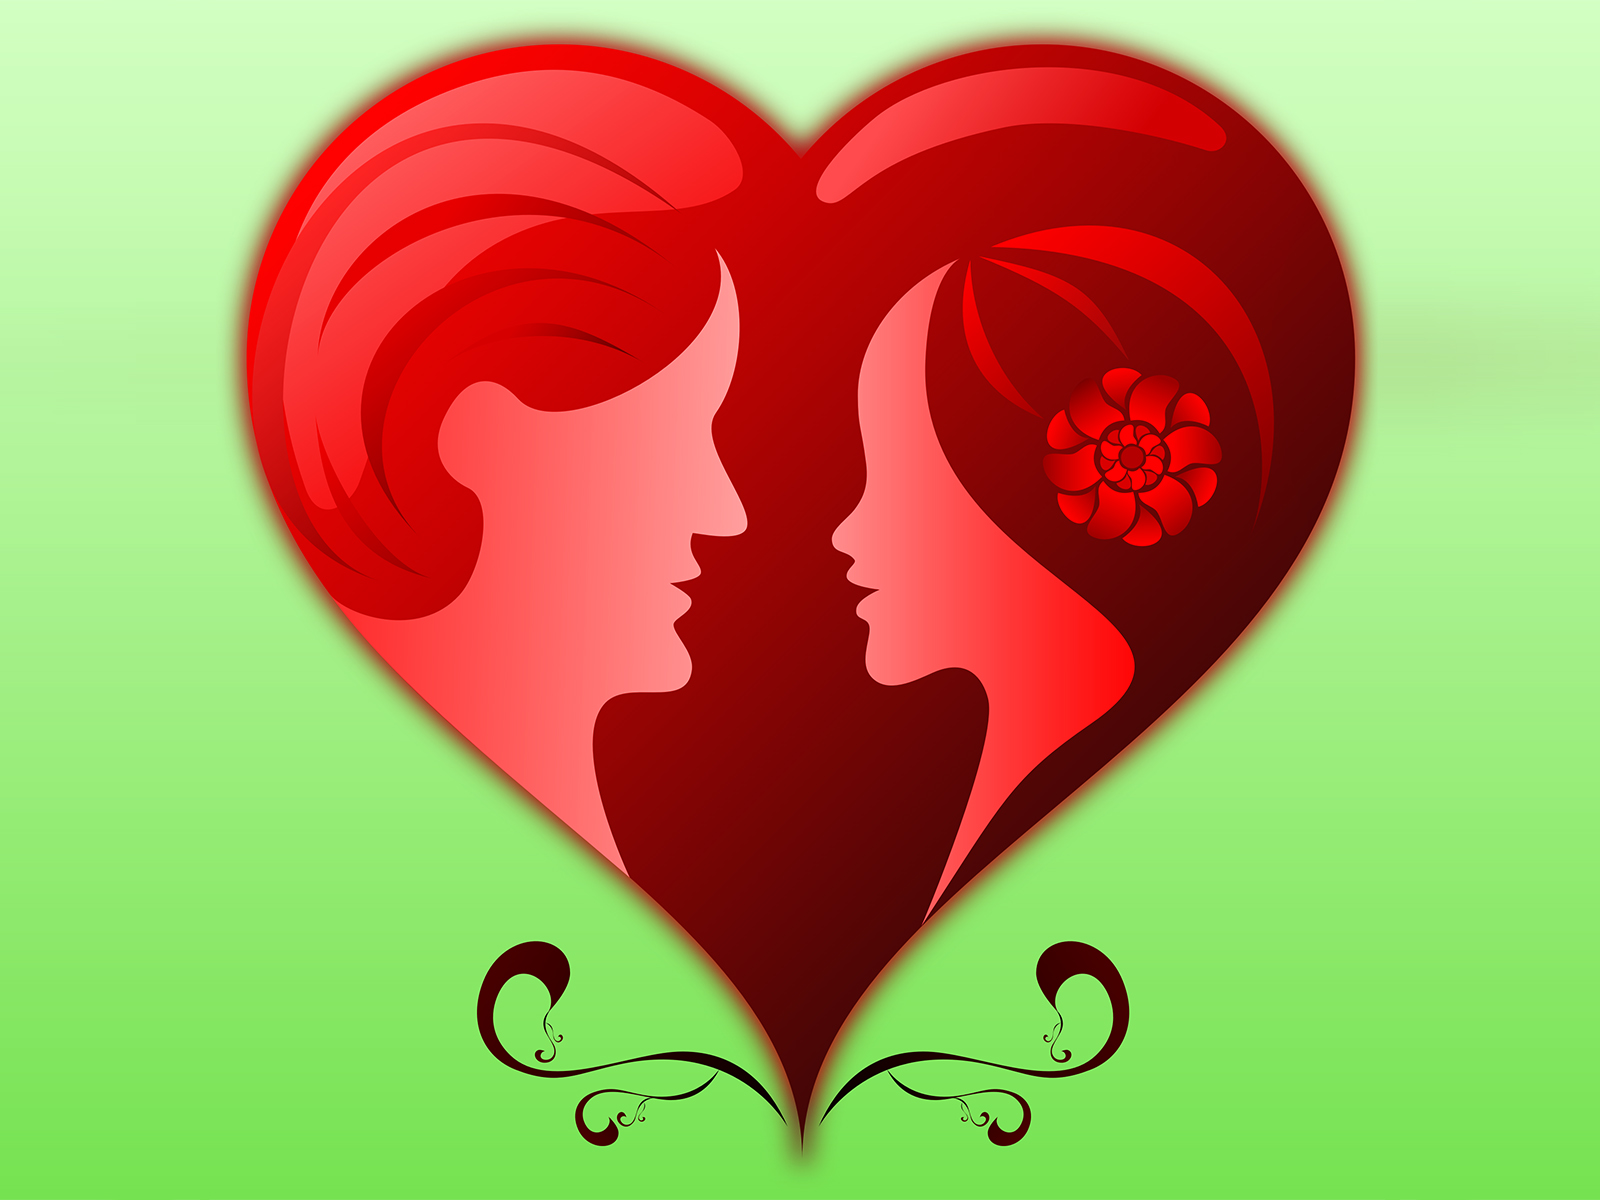 Romance Love Wedding Backgrounds | Green, Love, Red